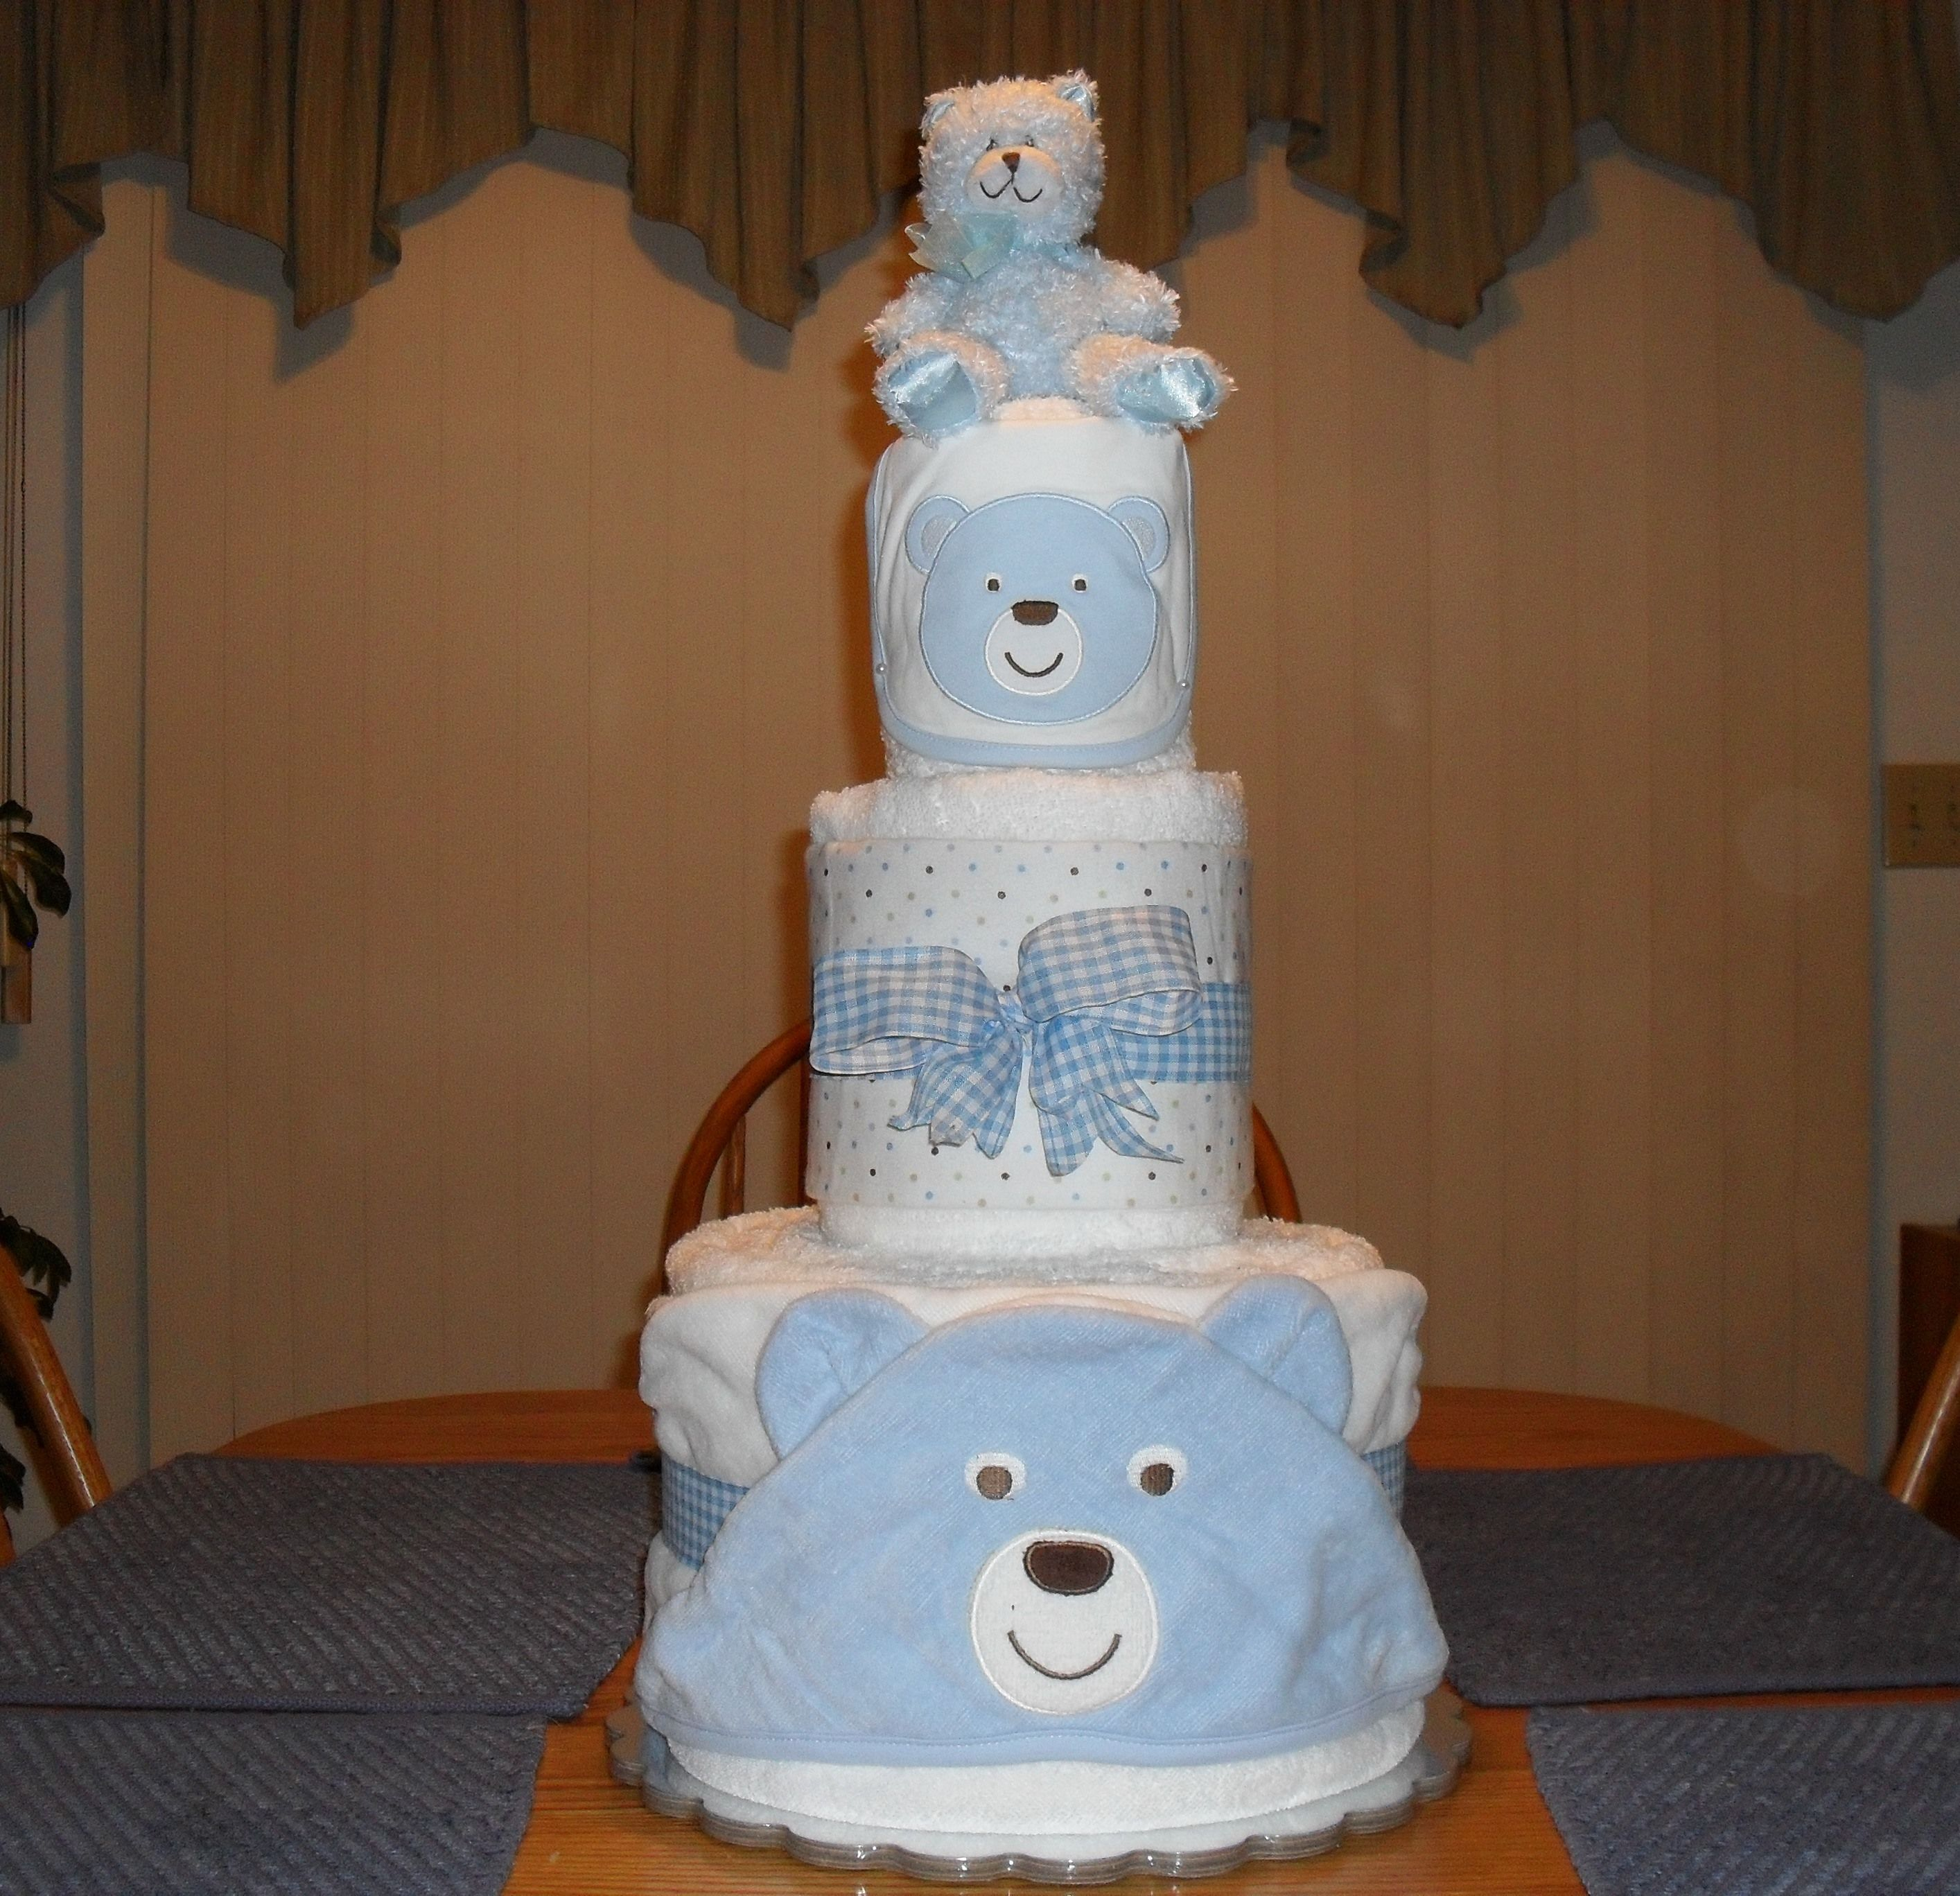 Towel cake for L's baby shower.....my first attempt at a